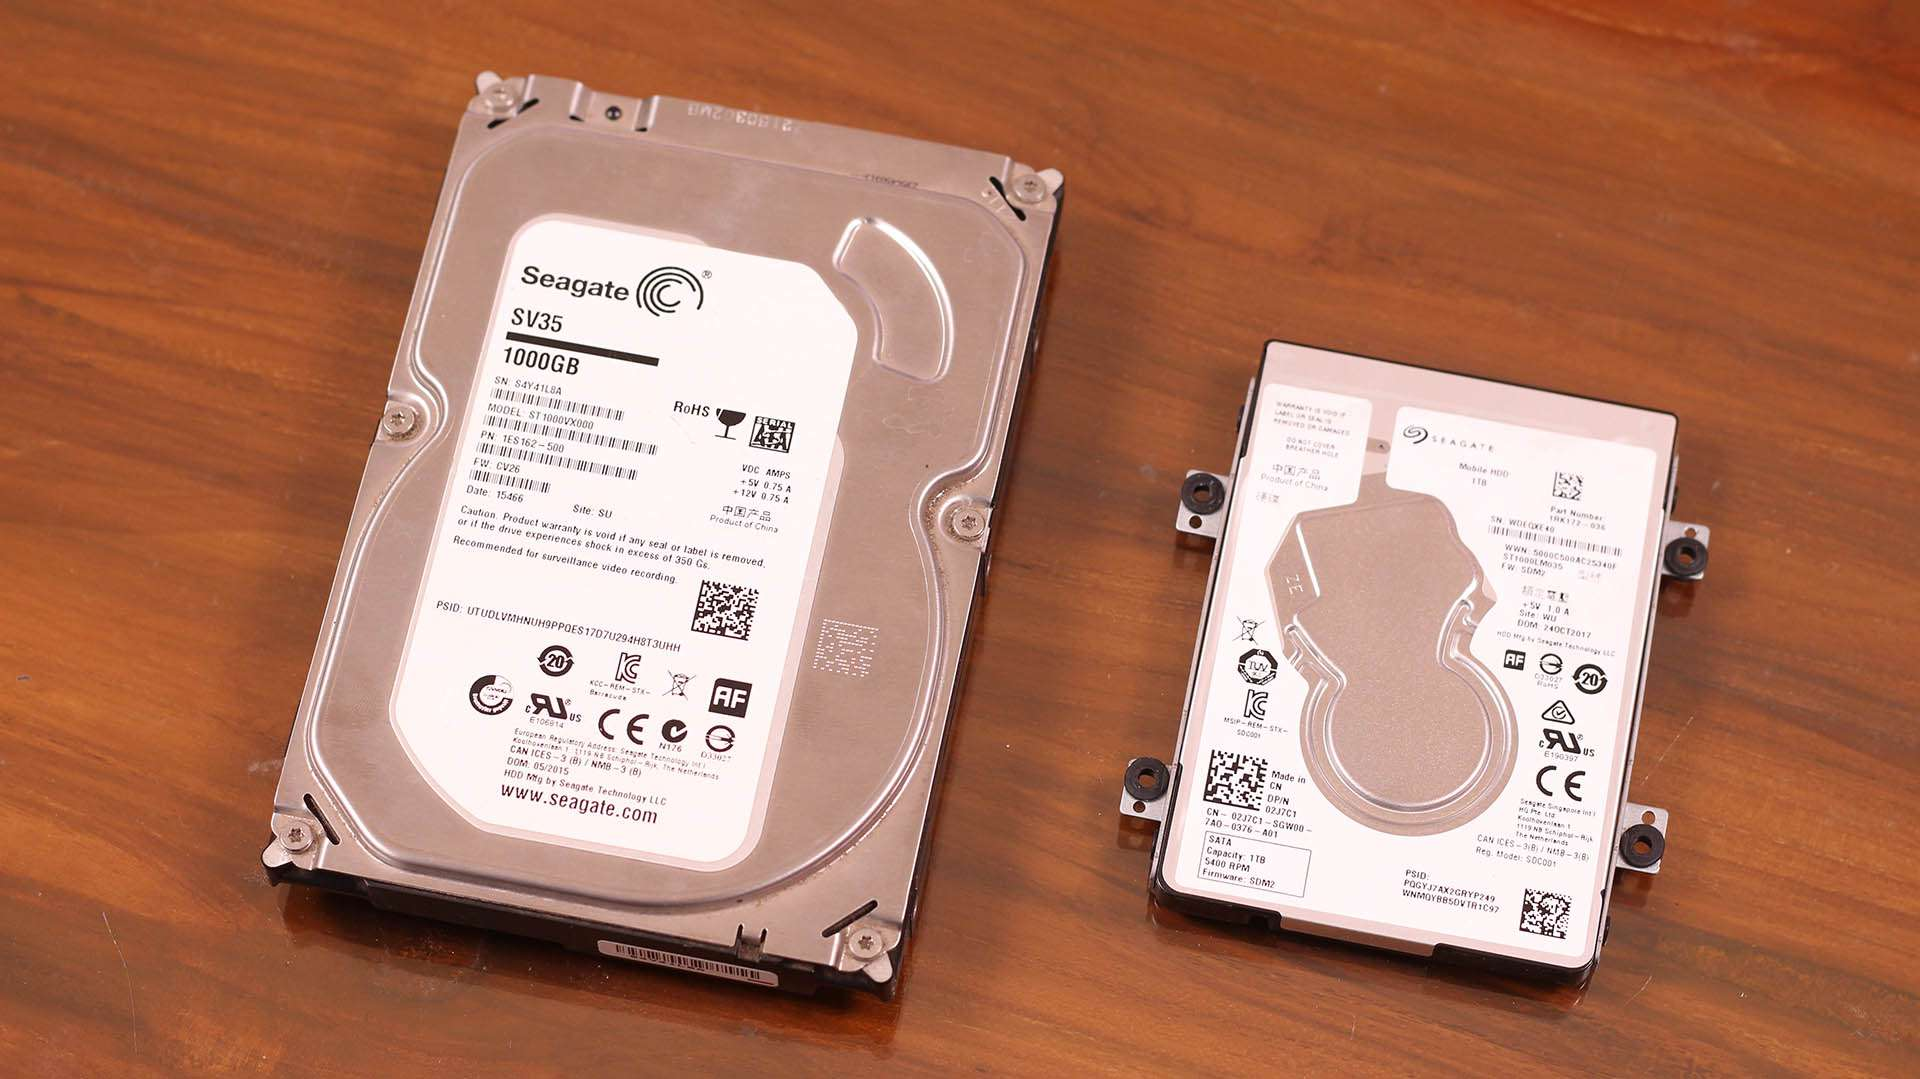 2.5 Vs 3.5 HDD: What is Better & Why?